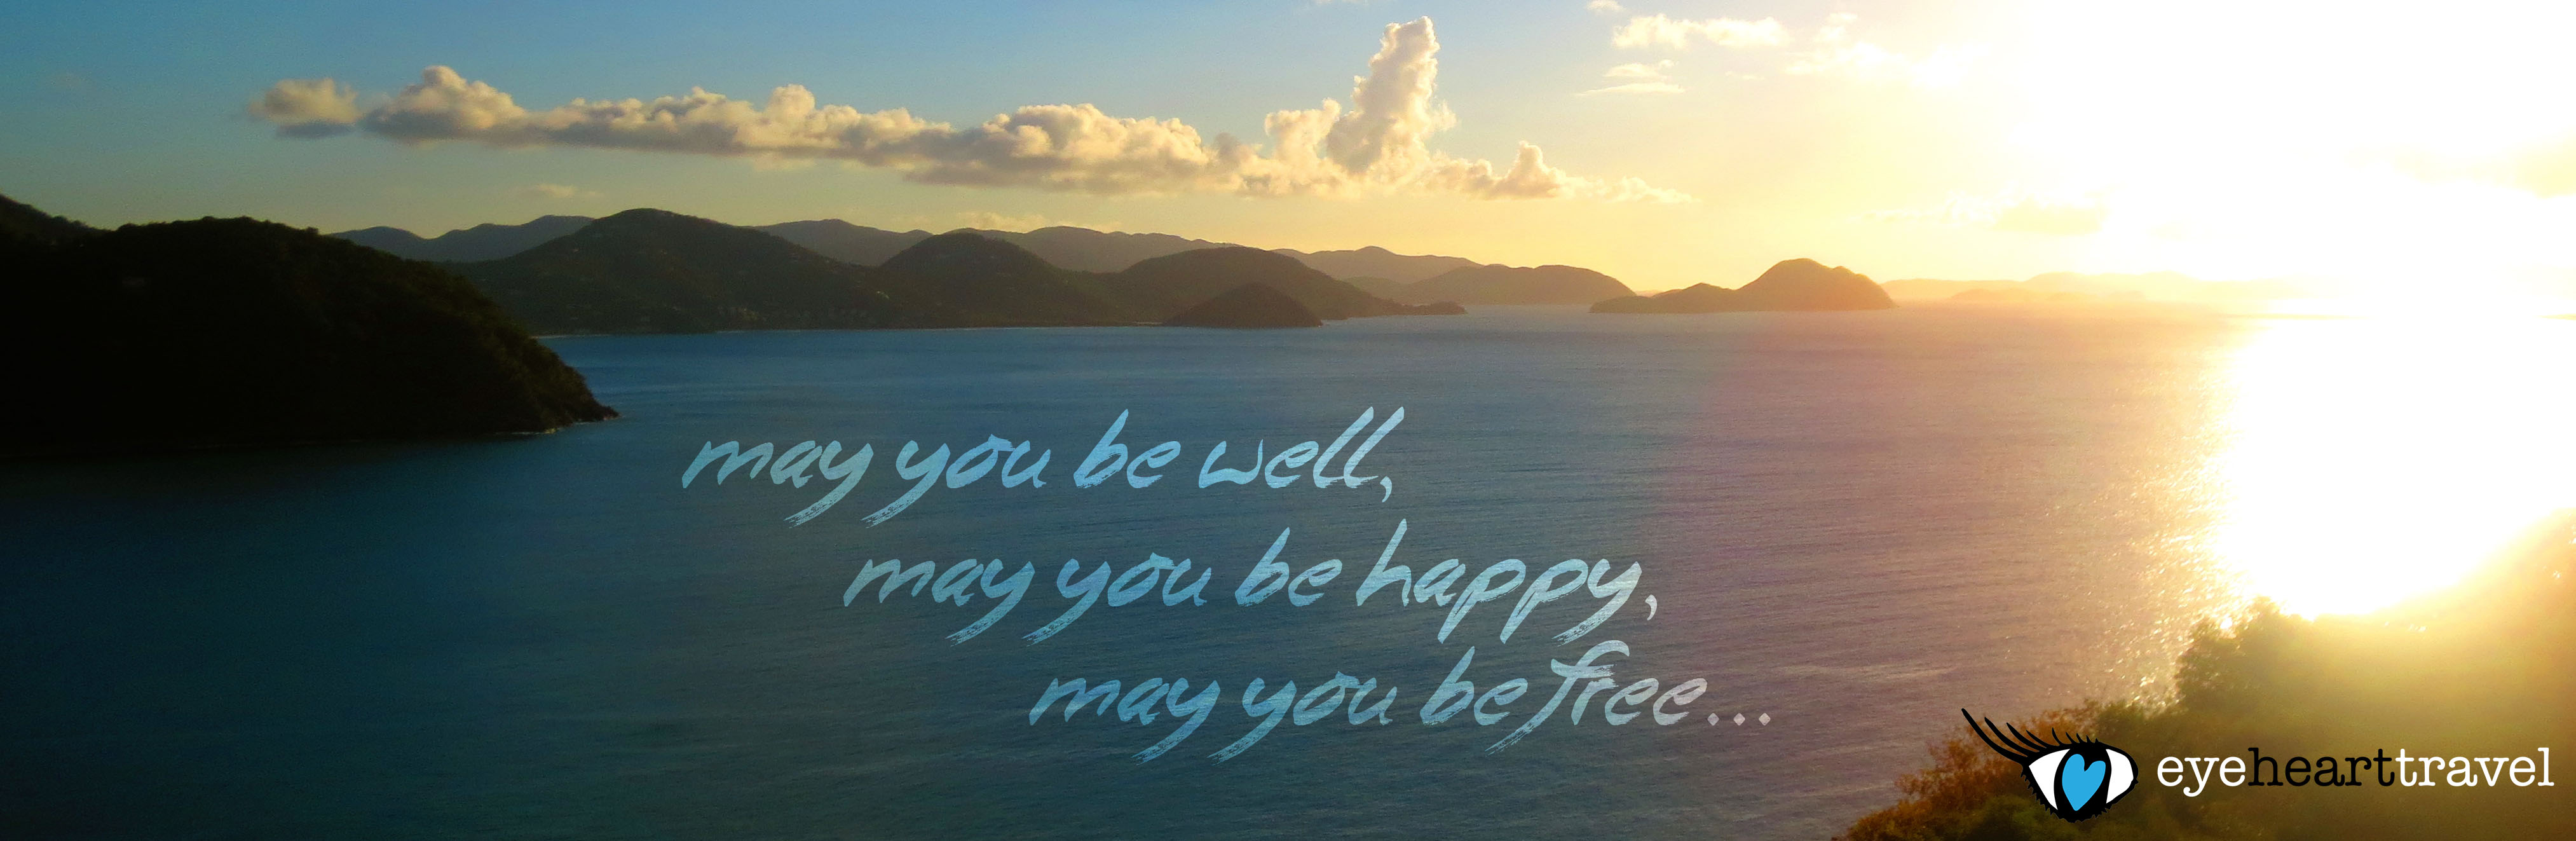 Facebook Cover Photos With Quotes A Photoquote From Tortola Bvi  Eyehearttravel